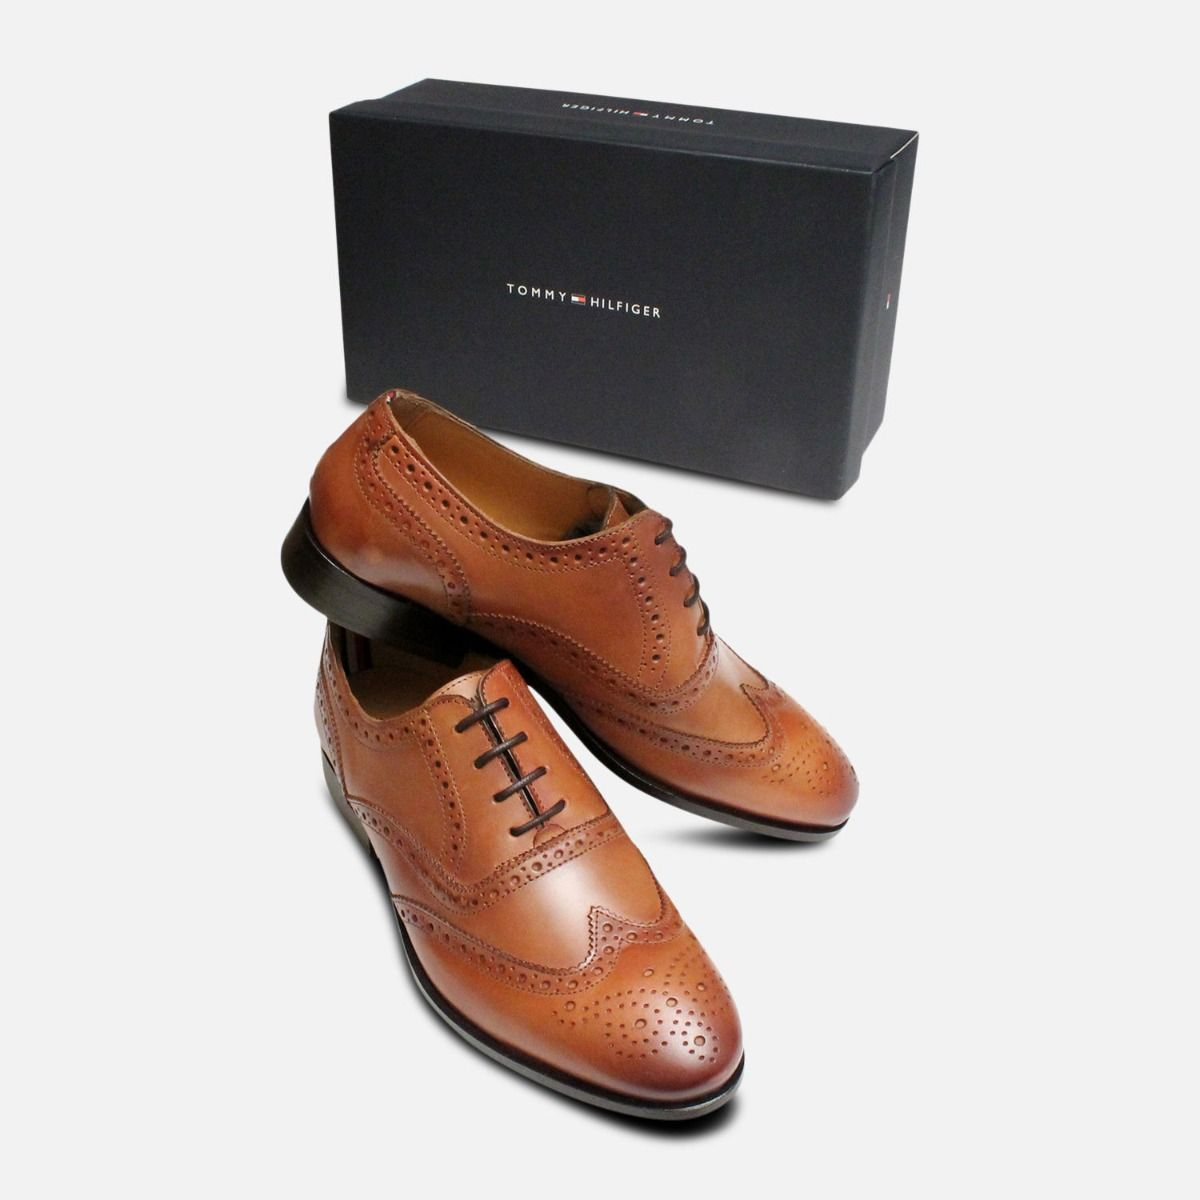 Tommy Hilfiger Brandy Brown Bennett Oxford Brogues